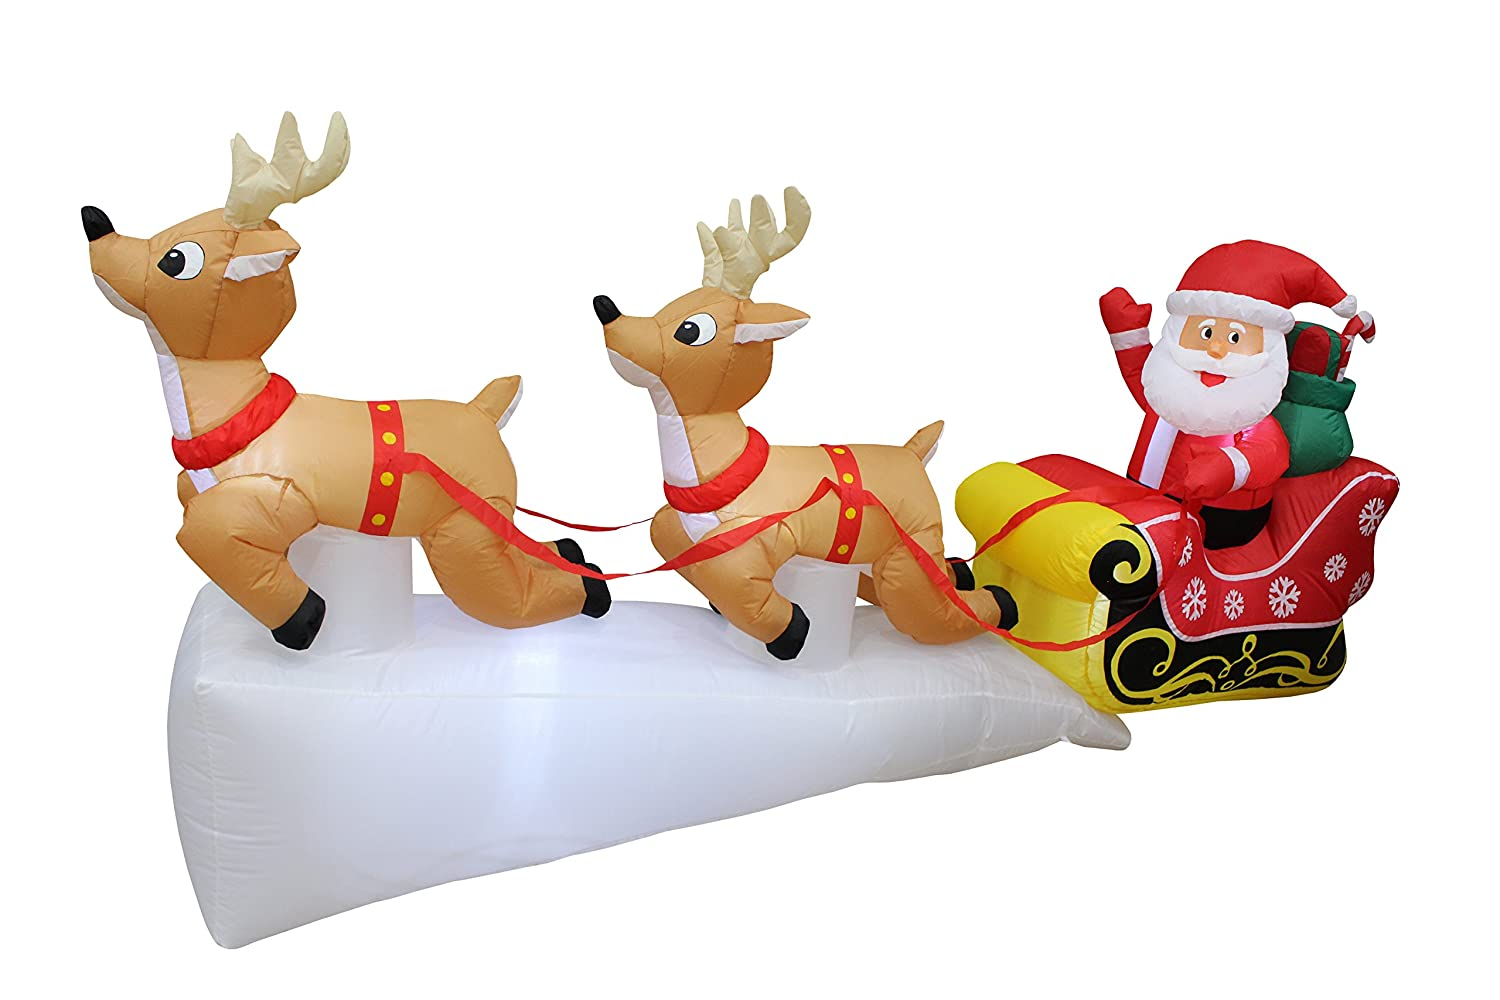 Amazon.com: 8 Foot Long Lighted Christmas Inflatable Santa Claus on ...